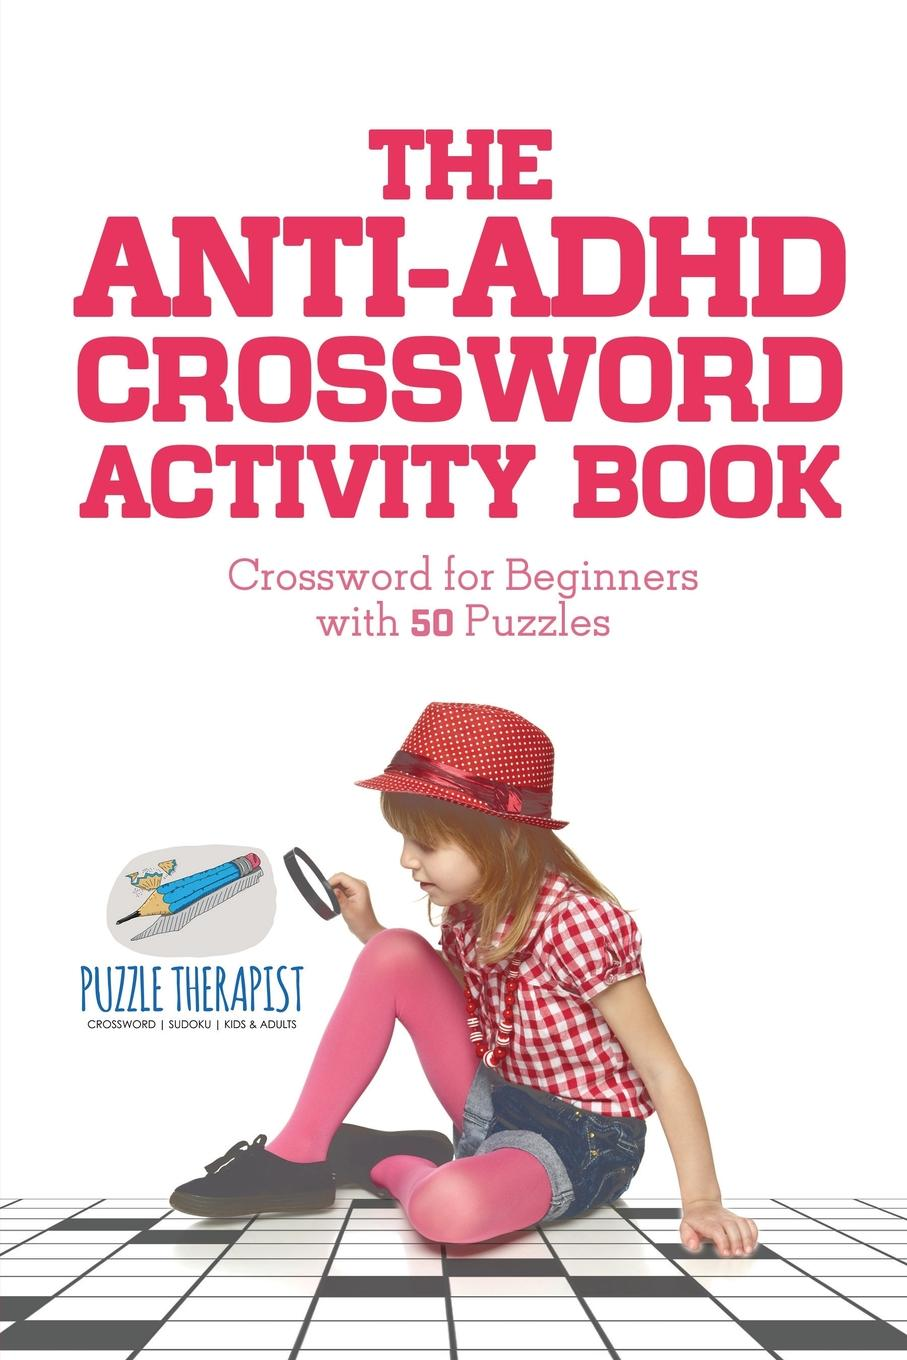 Puzzle Therapist The Anti-ADHD Crossword Activity Book . Crossword for Beginners with 50 Puzzles